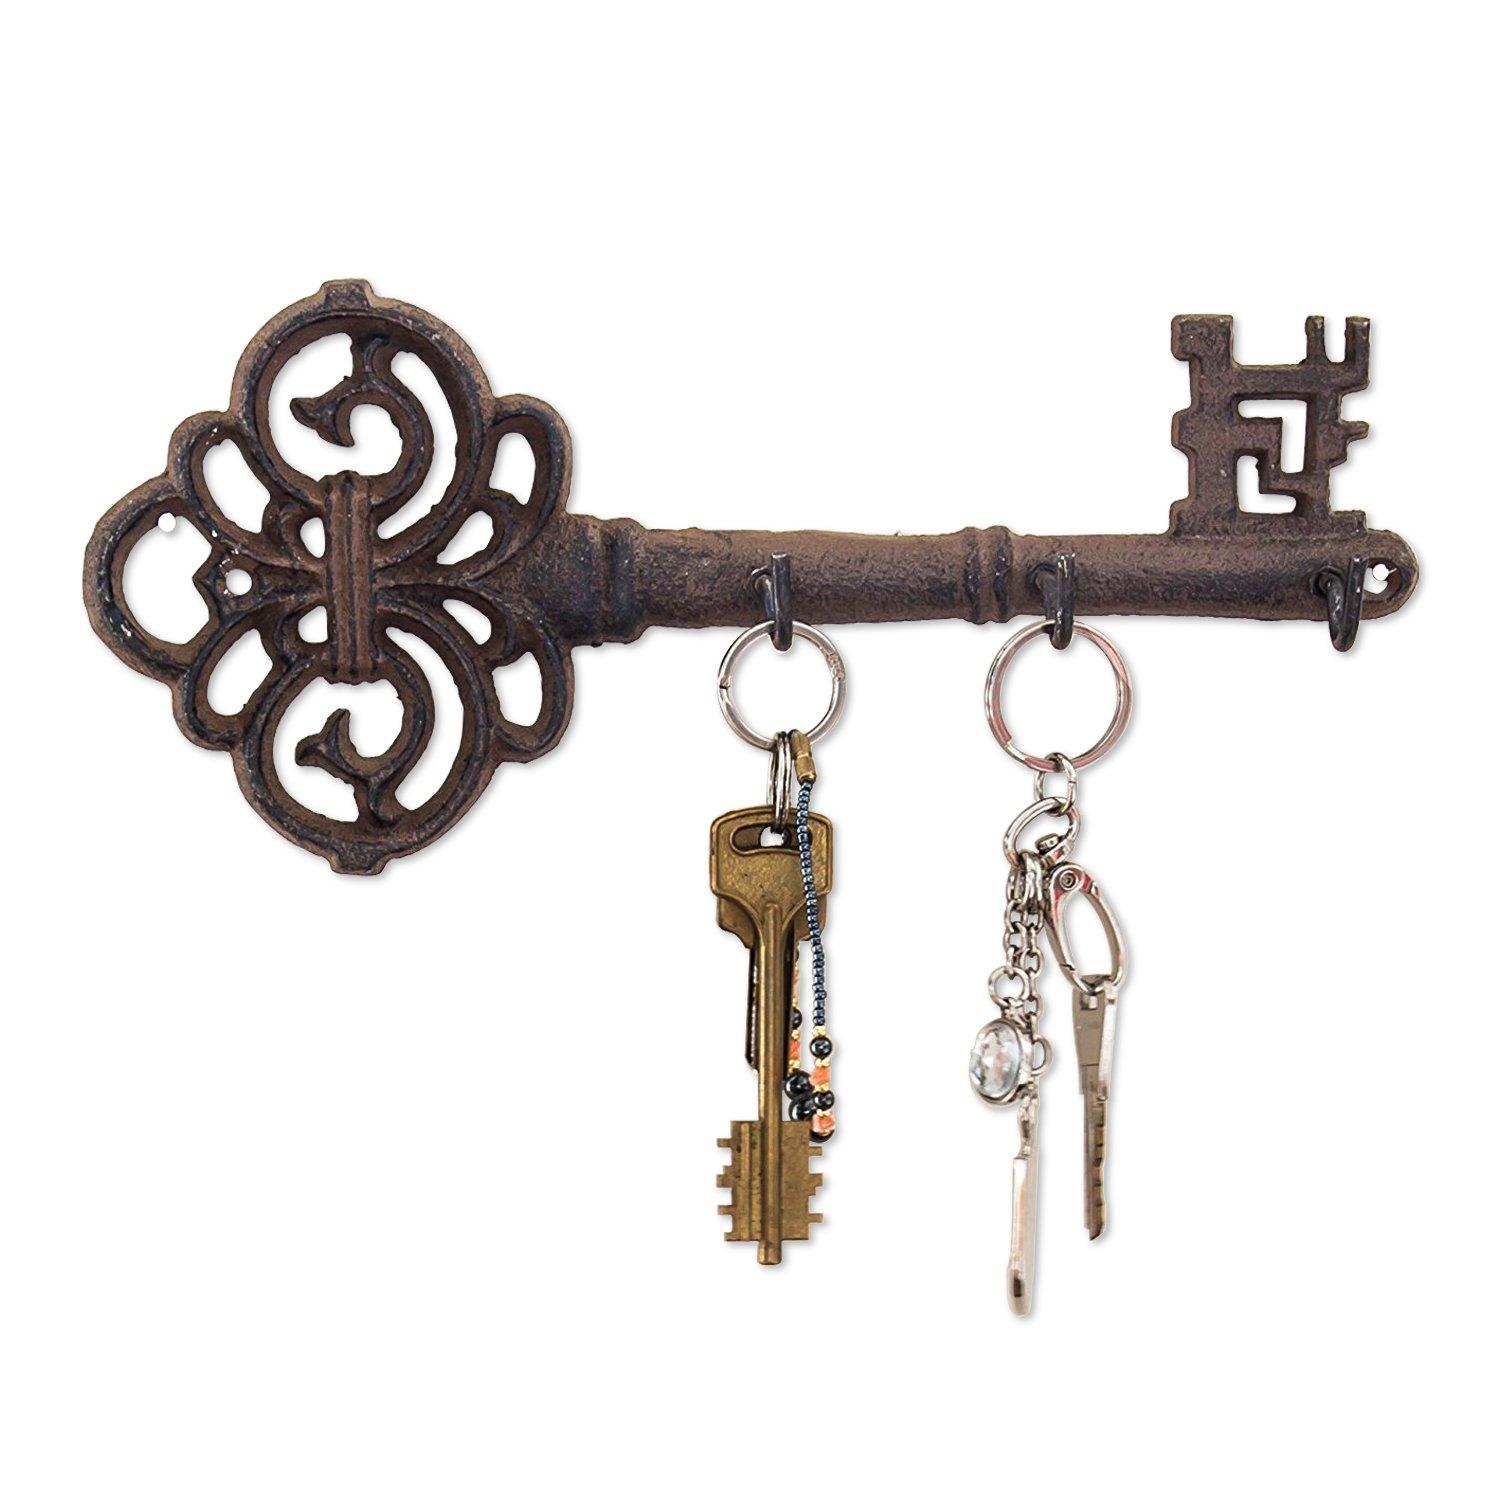 Decorative wall mounted key holder vintage key with 3 hooks wall mounted rustic cast iron 10 8 x 4 7 with screws and anchors by comfify